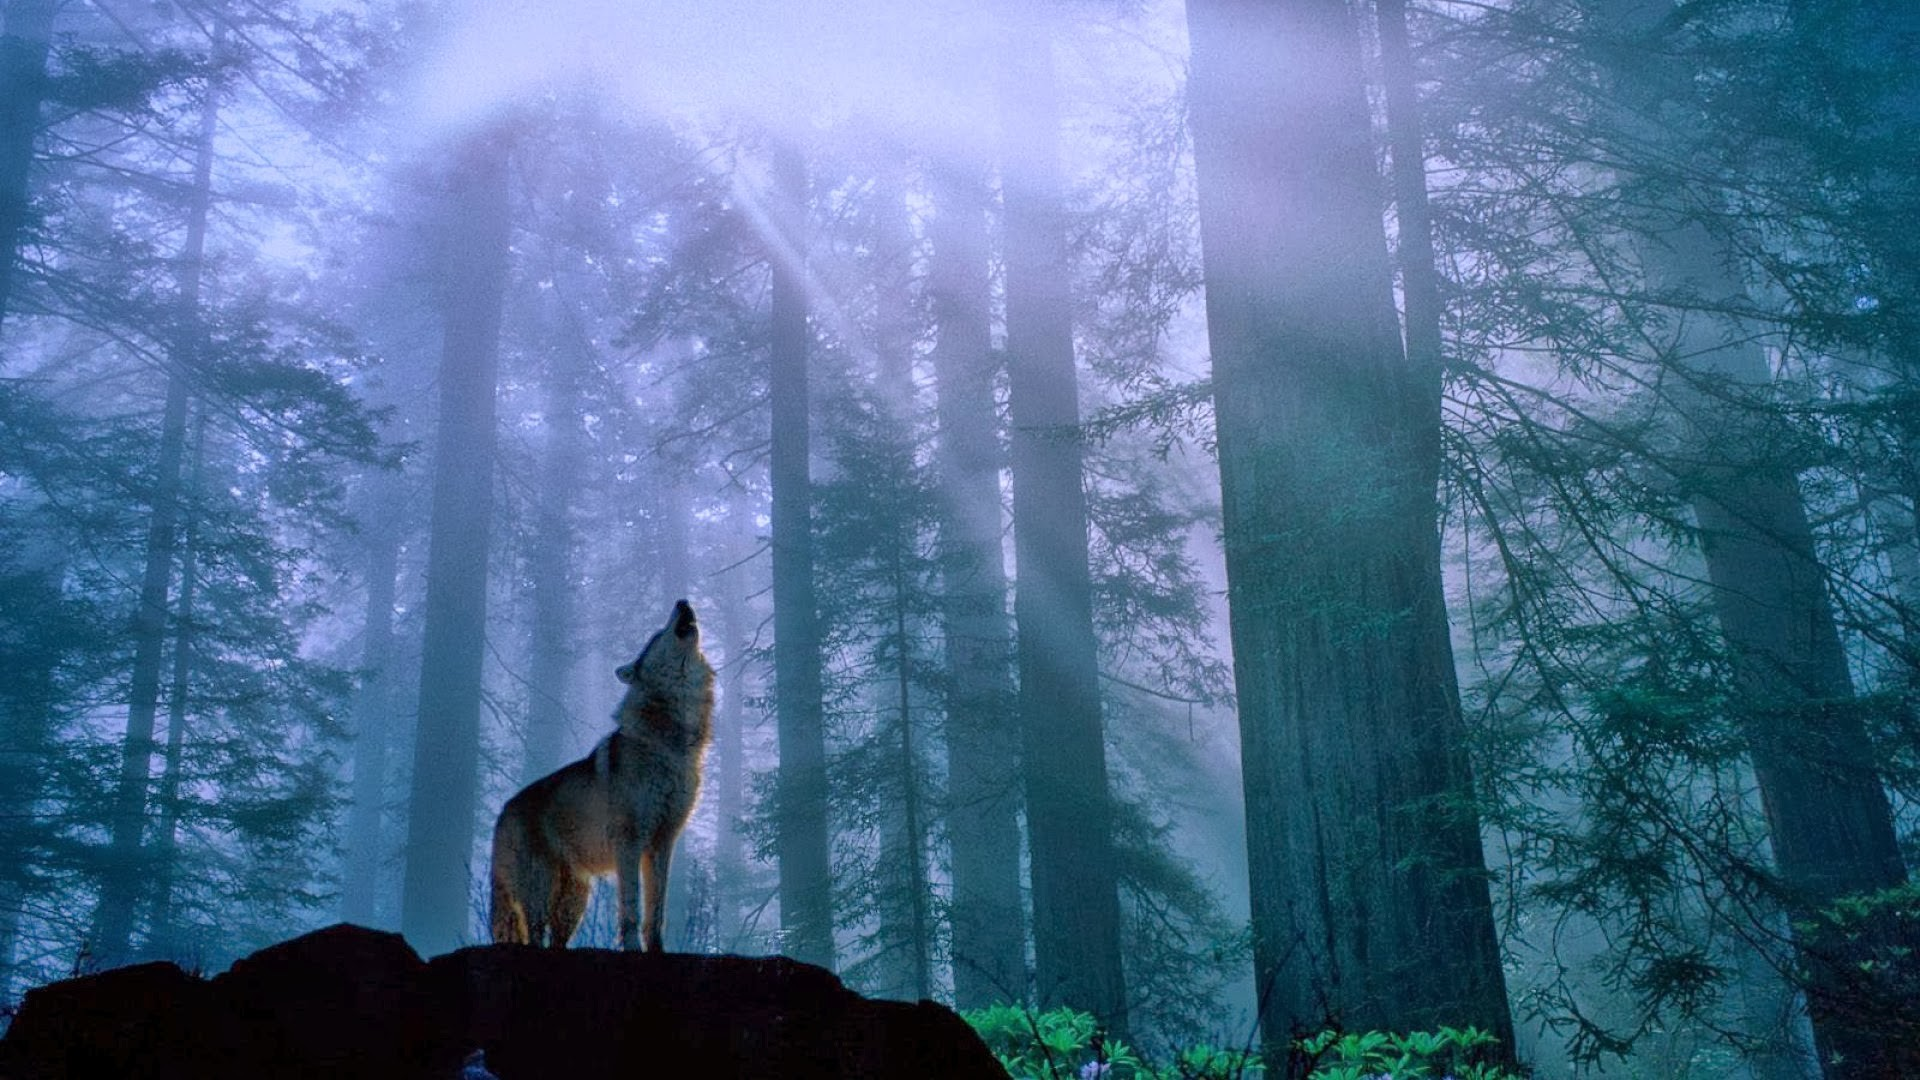 1920x1080 Howling Wolf Wallpaper - WallpaperSafari ...